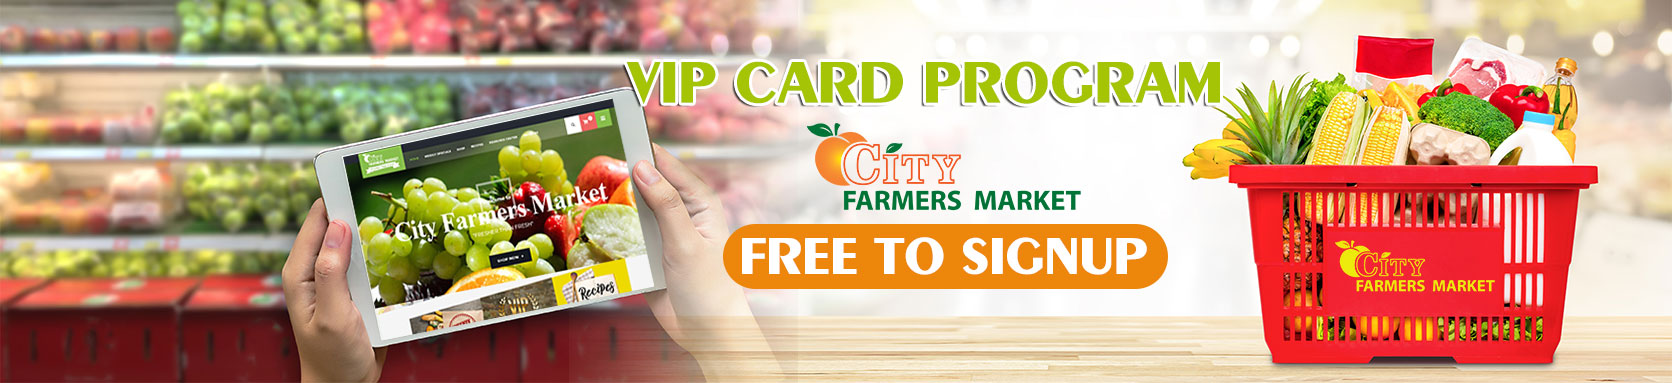 VIP Card Signup in Store City Farmers Market Atlanta Georgia VIP Card Program v1